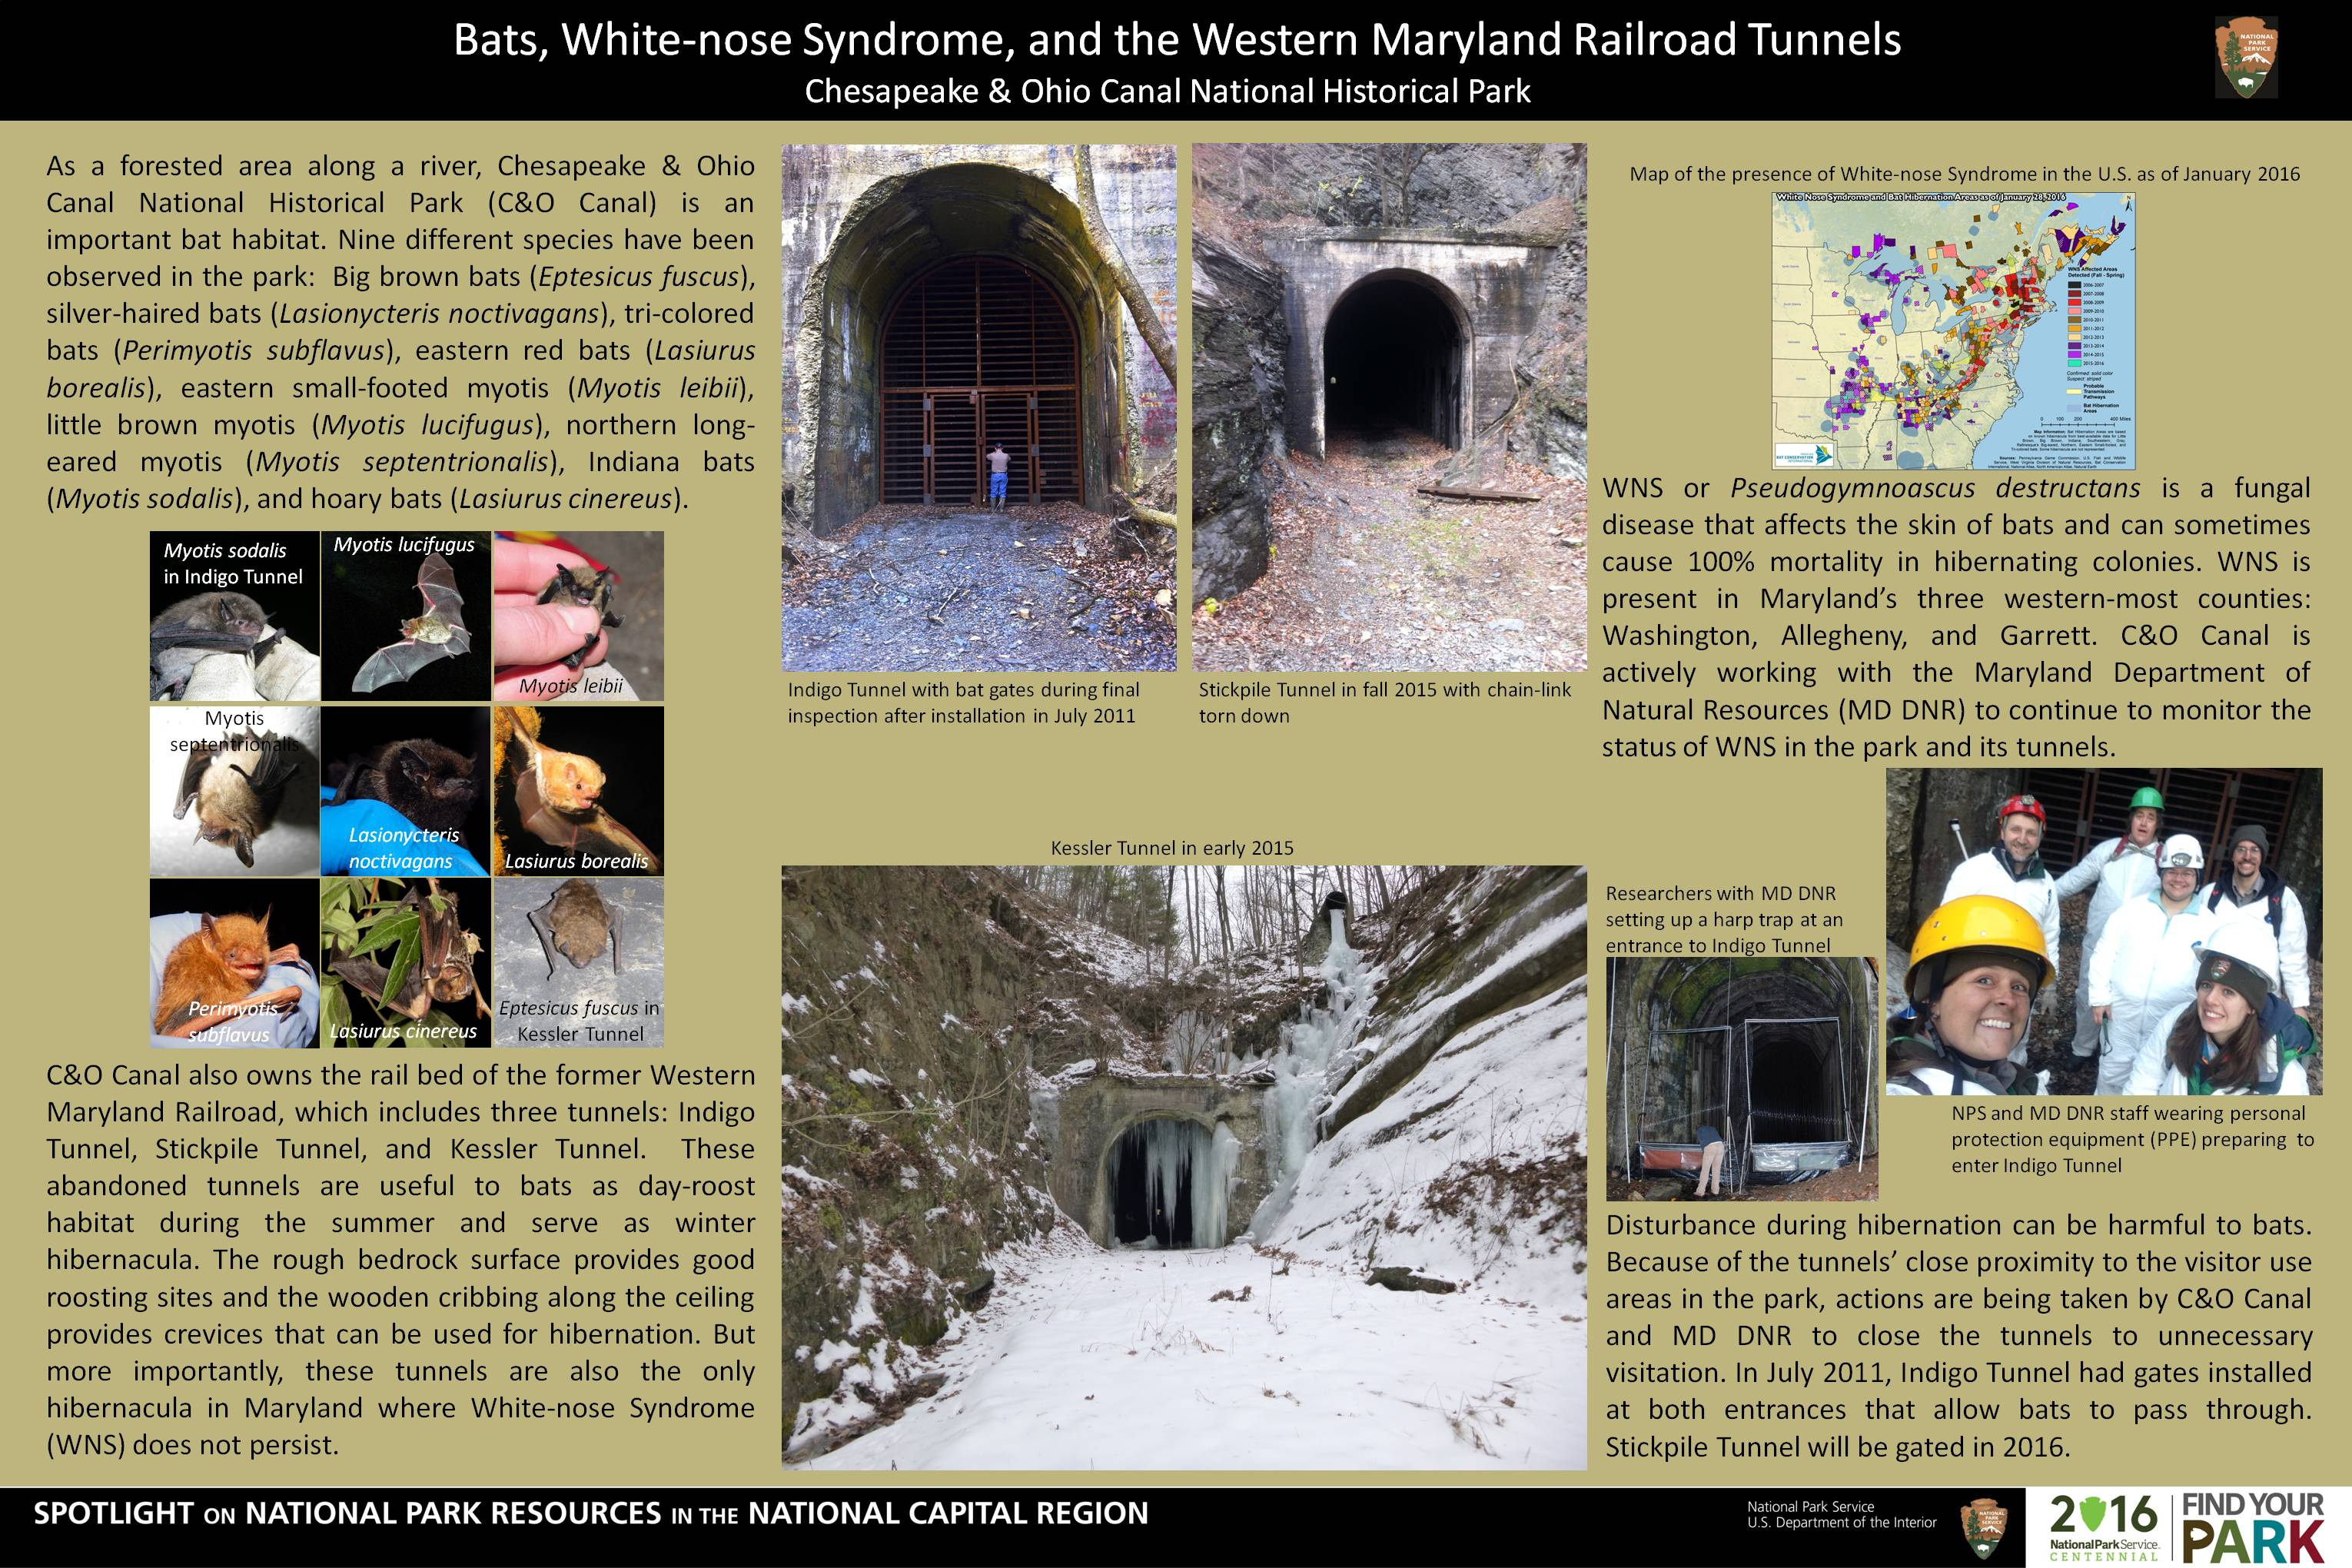 Bats Whitenose Syndrome and the Western Maryland Railroad